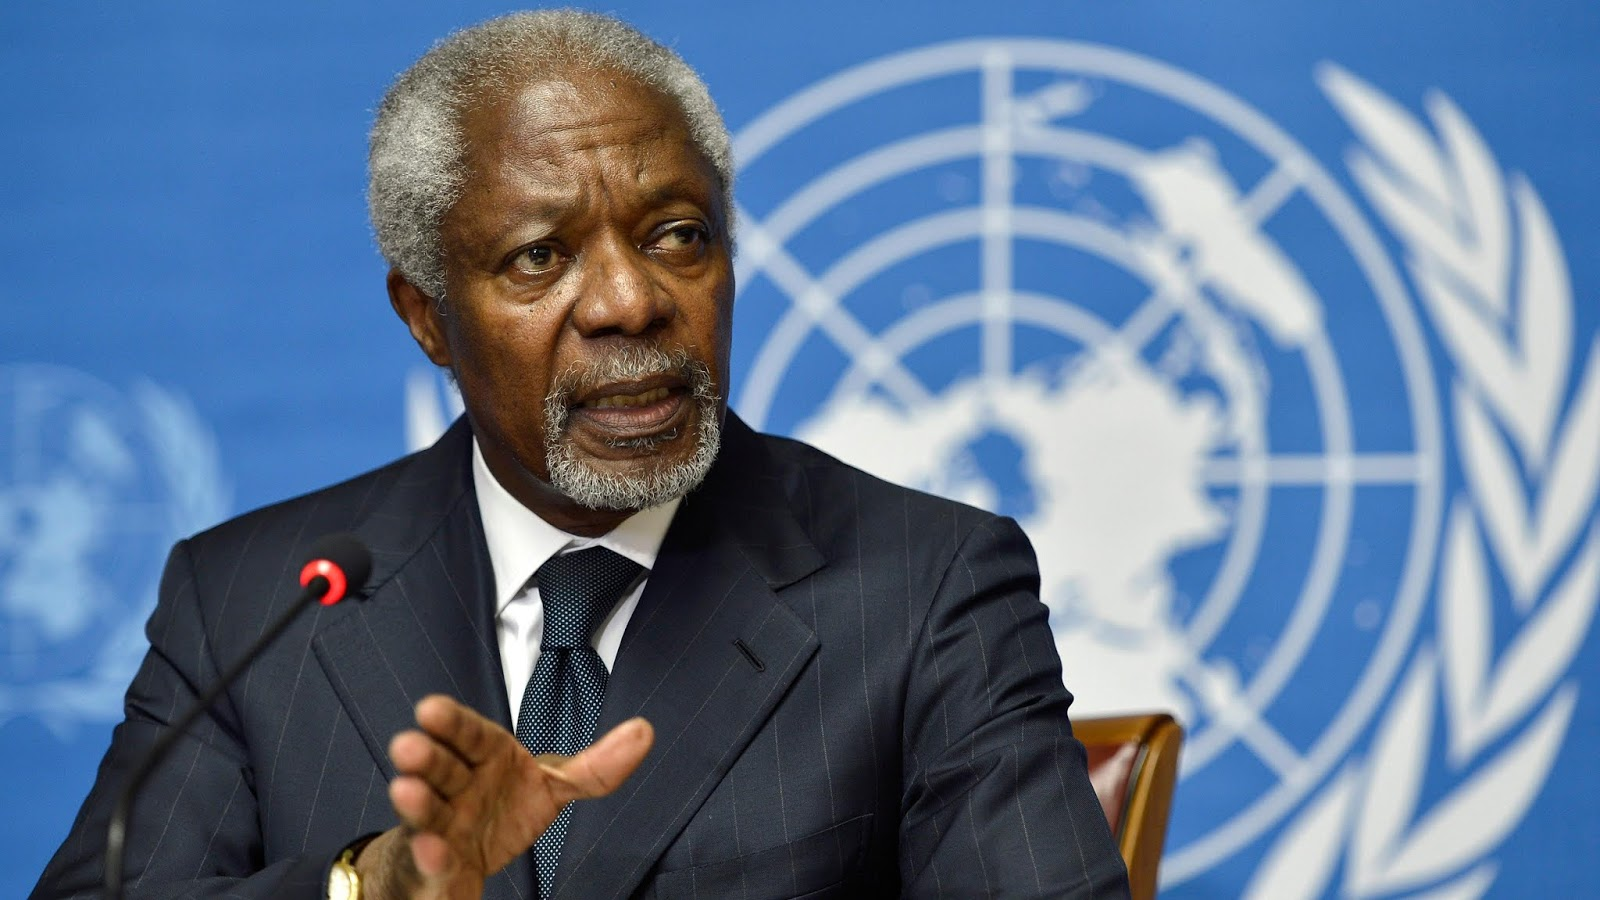 Ex-UN Secretary-General Kofi Annan Dies At 80 - Tributes Mourn 'Great Leader!'